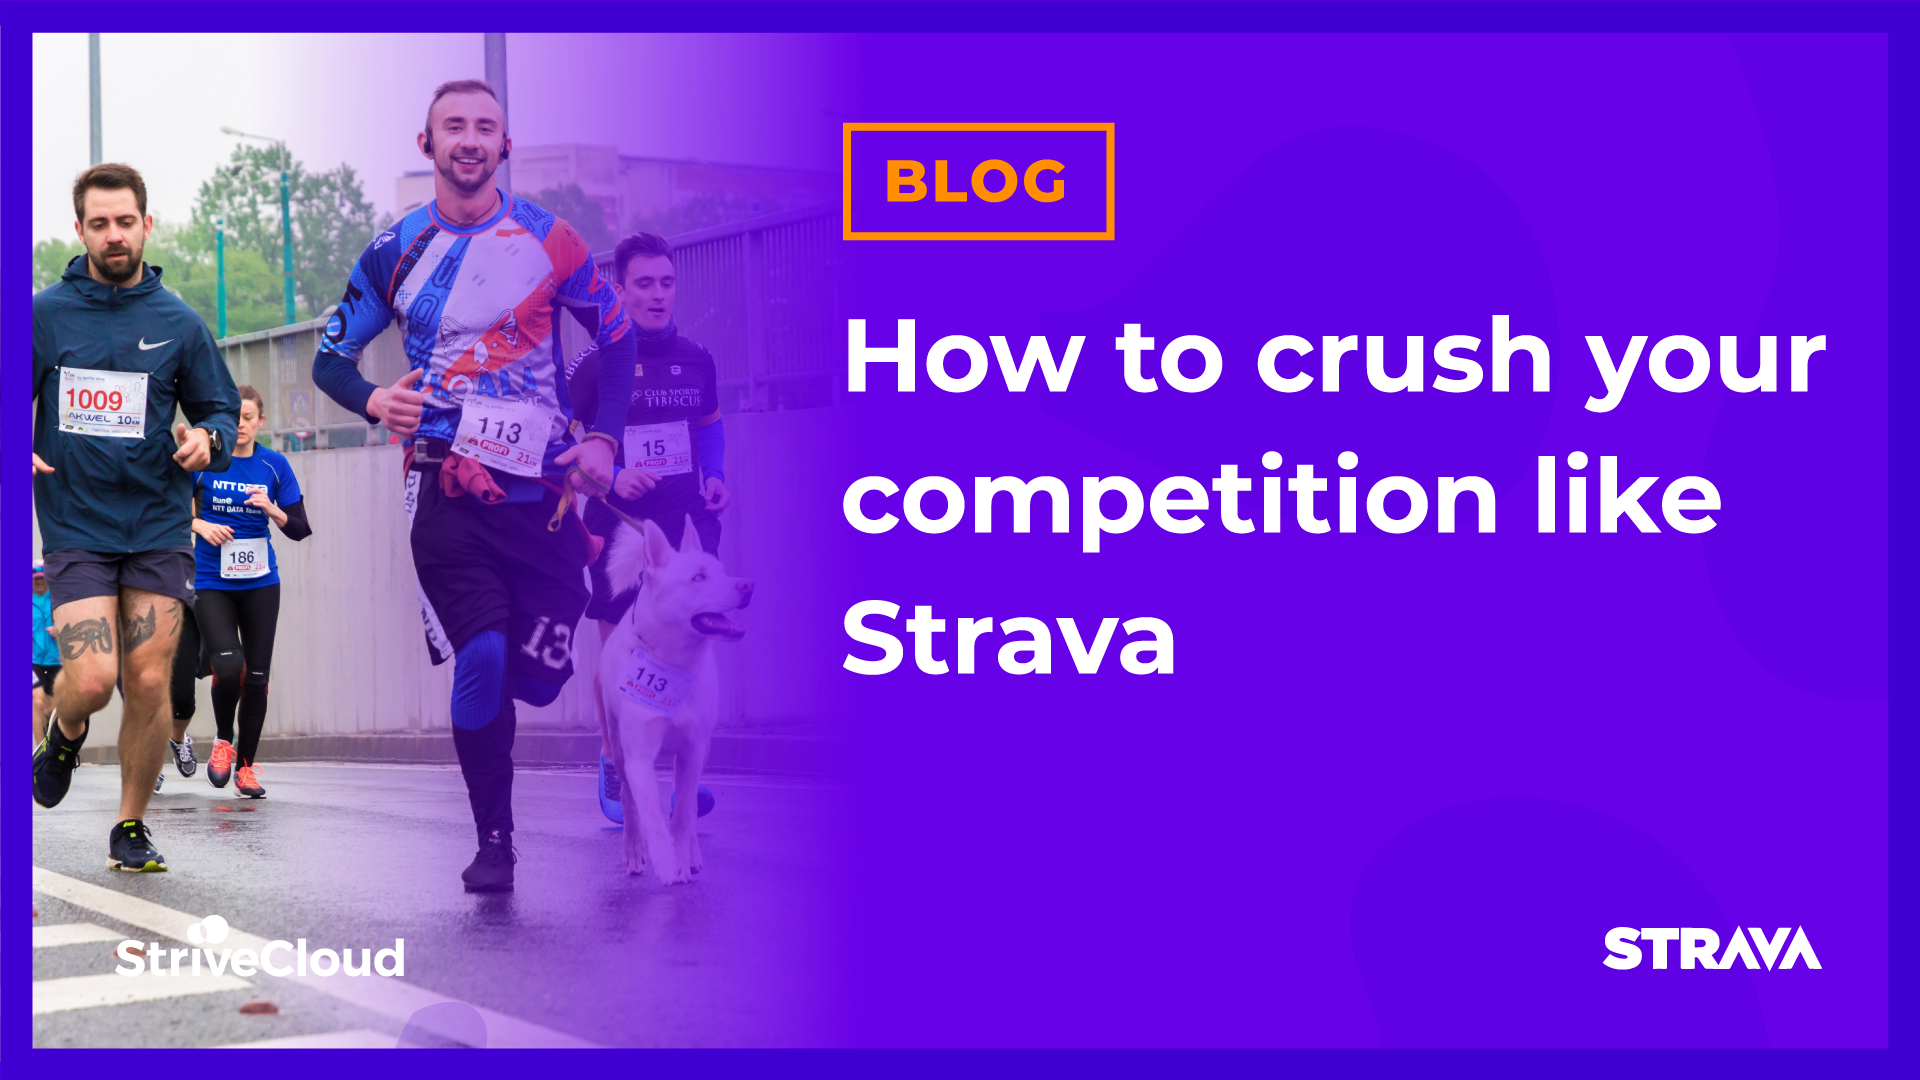 How to crush your competition like Strava